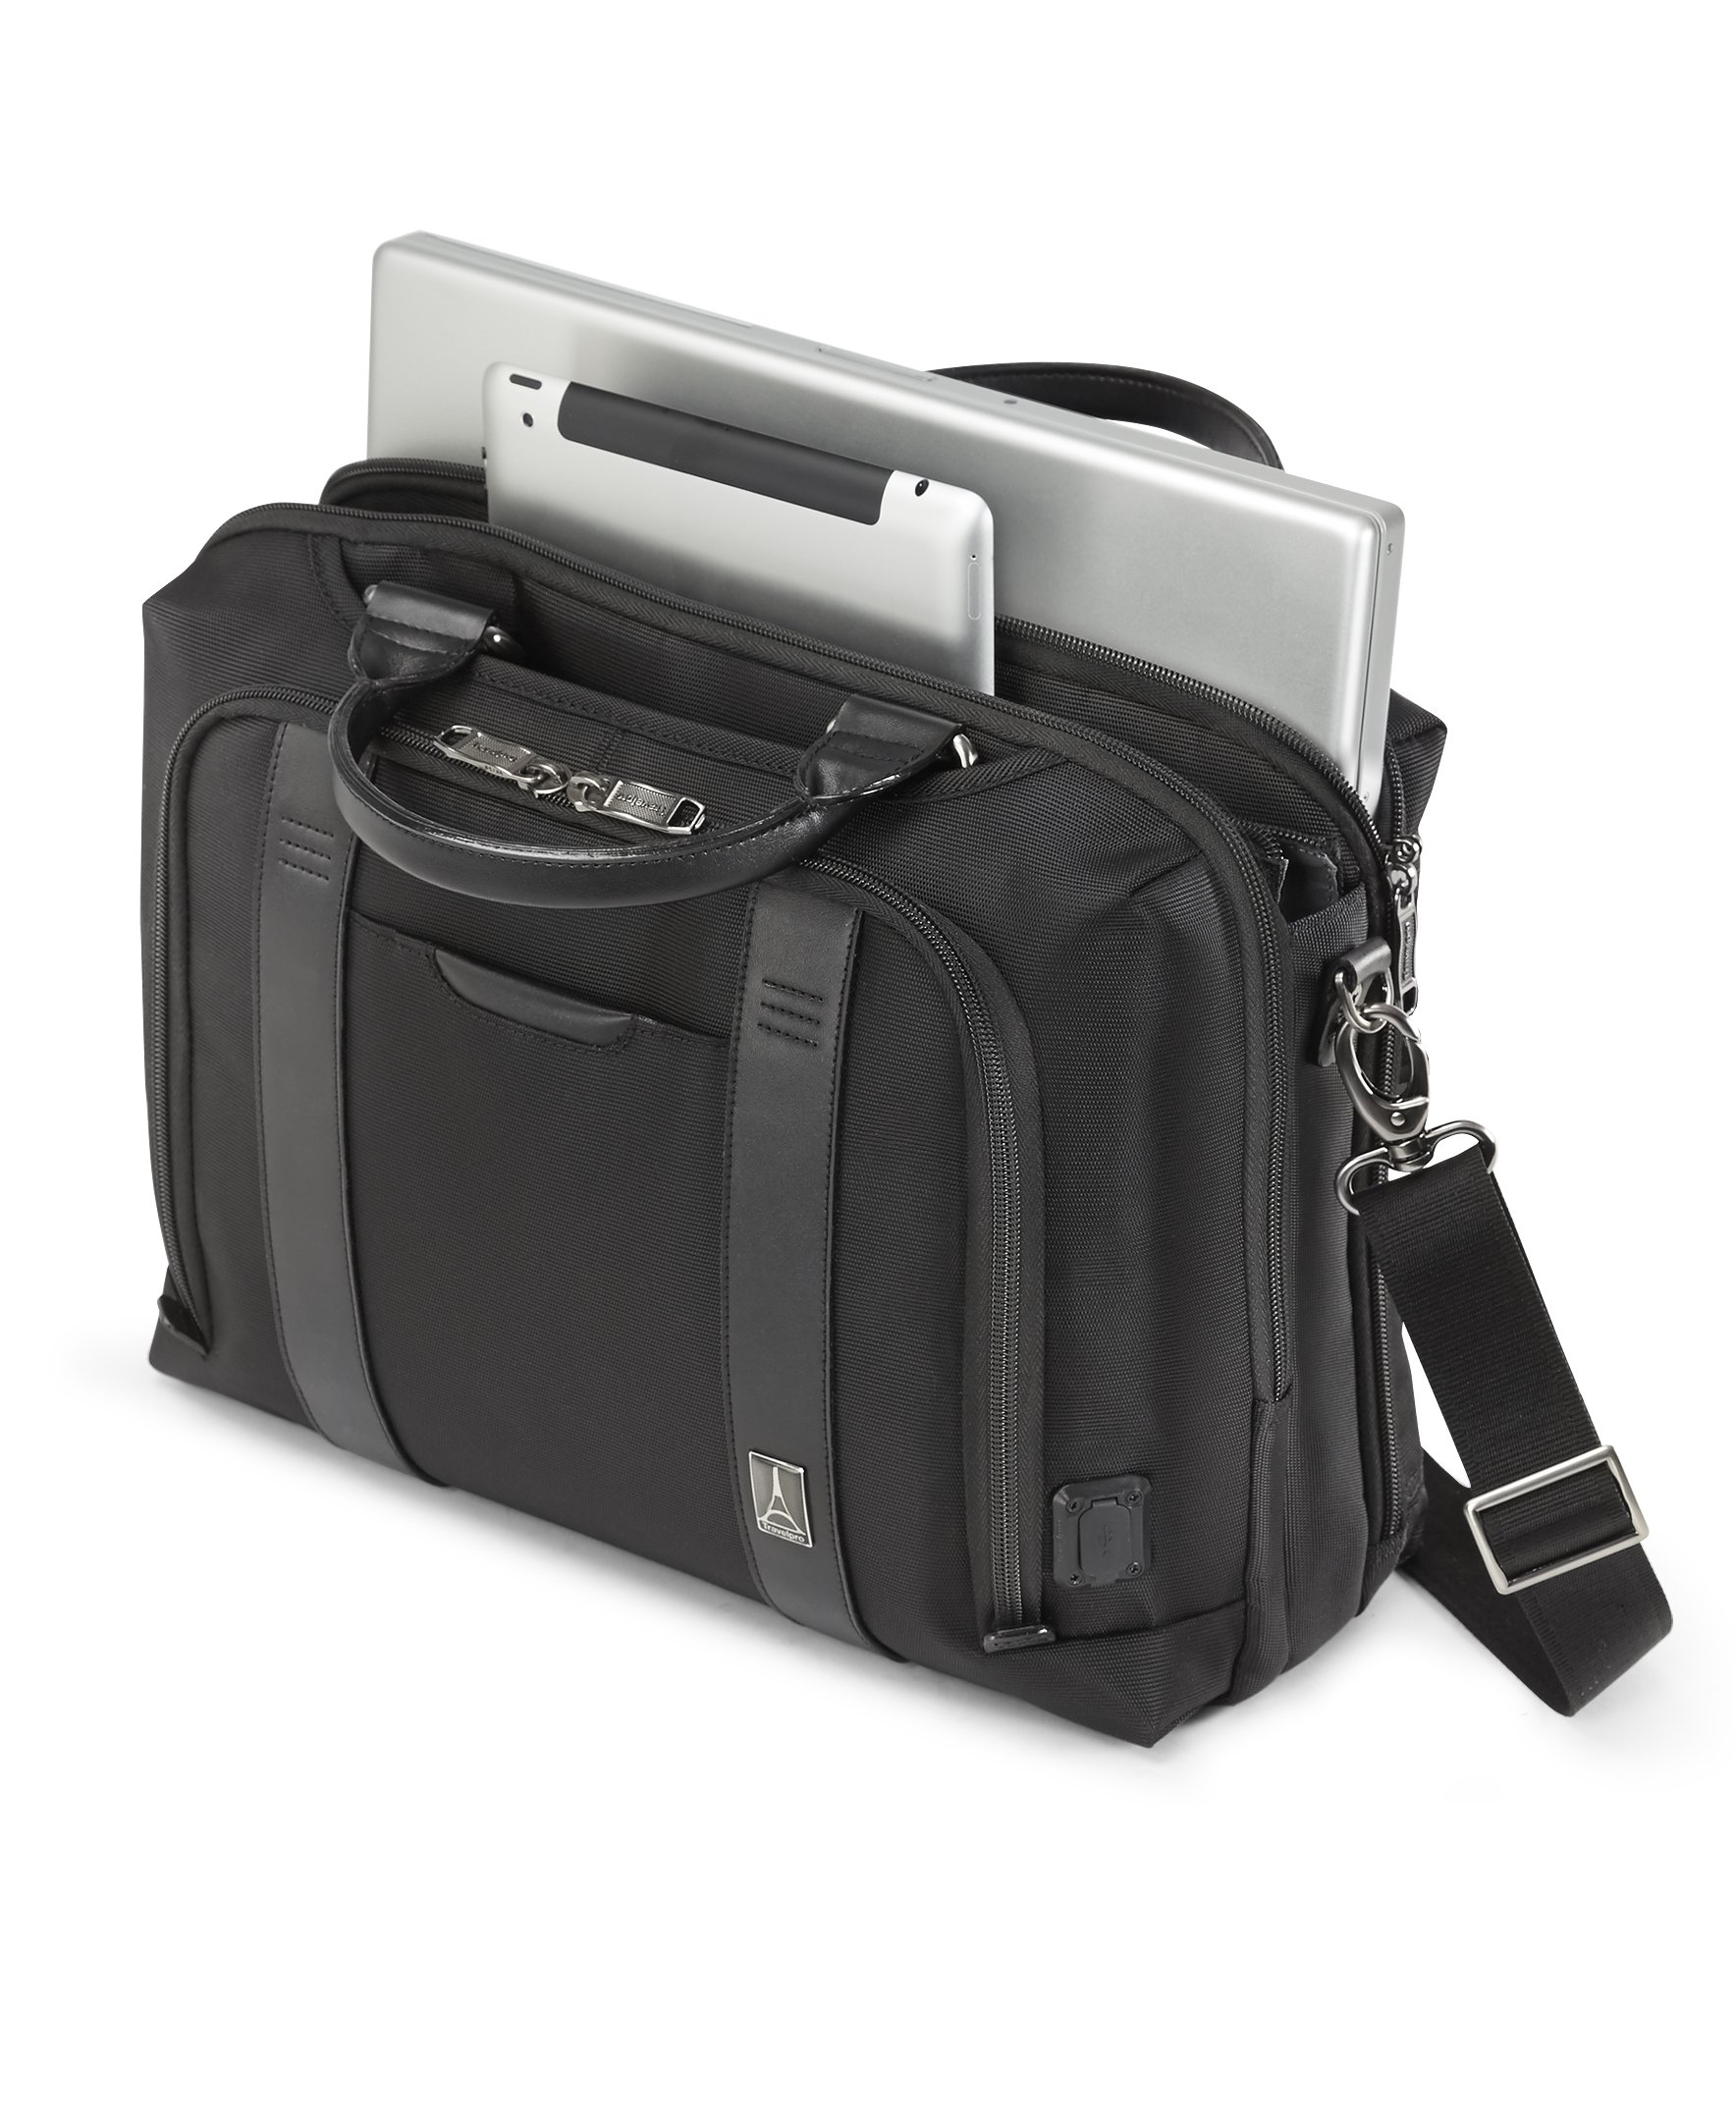 Travelpro Crew Executive Choice 2 Pilot Under-Seat Brief Bag, 16-in with USB port by Travelpro (Image #3)